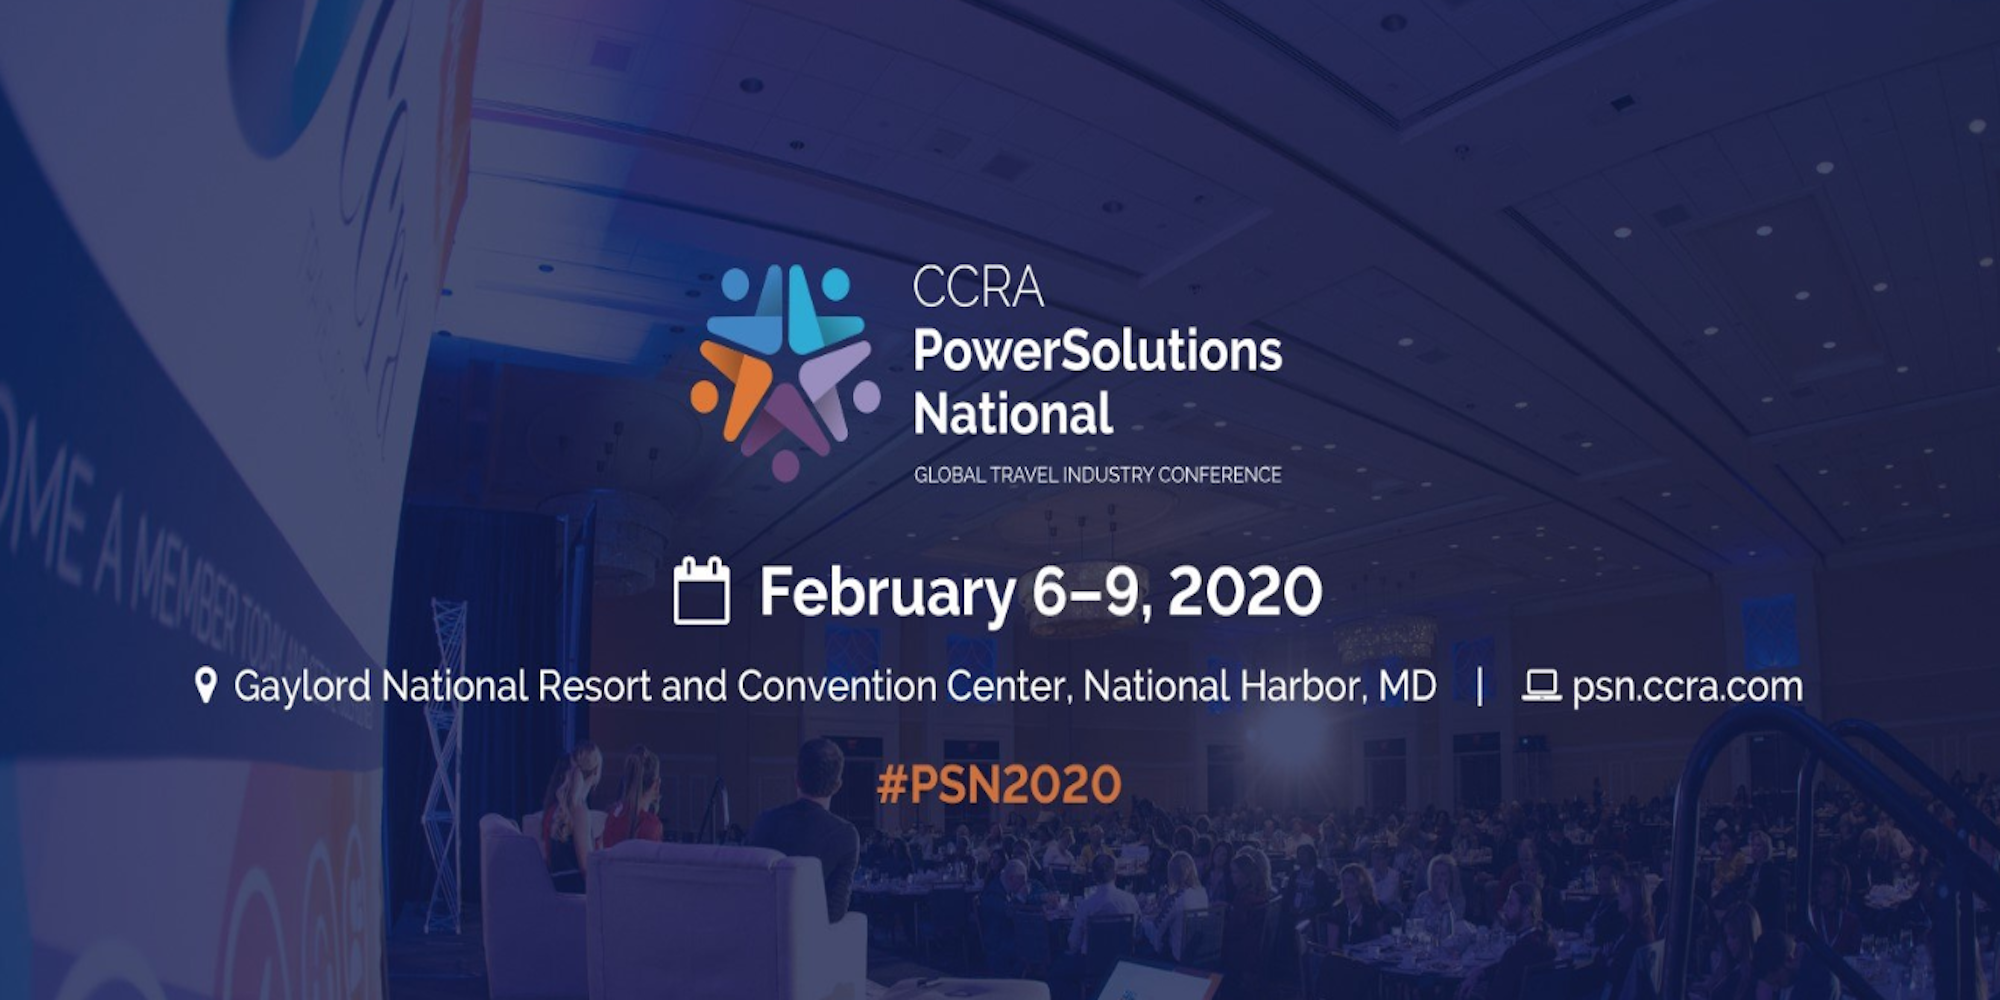 PowerSolutions National Conference